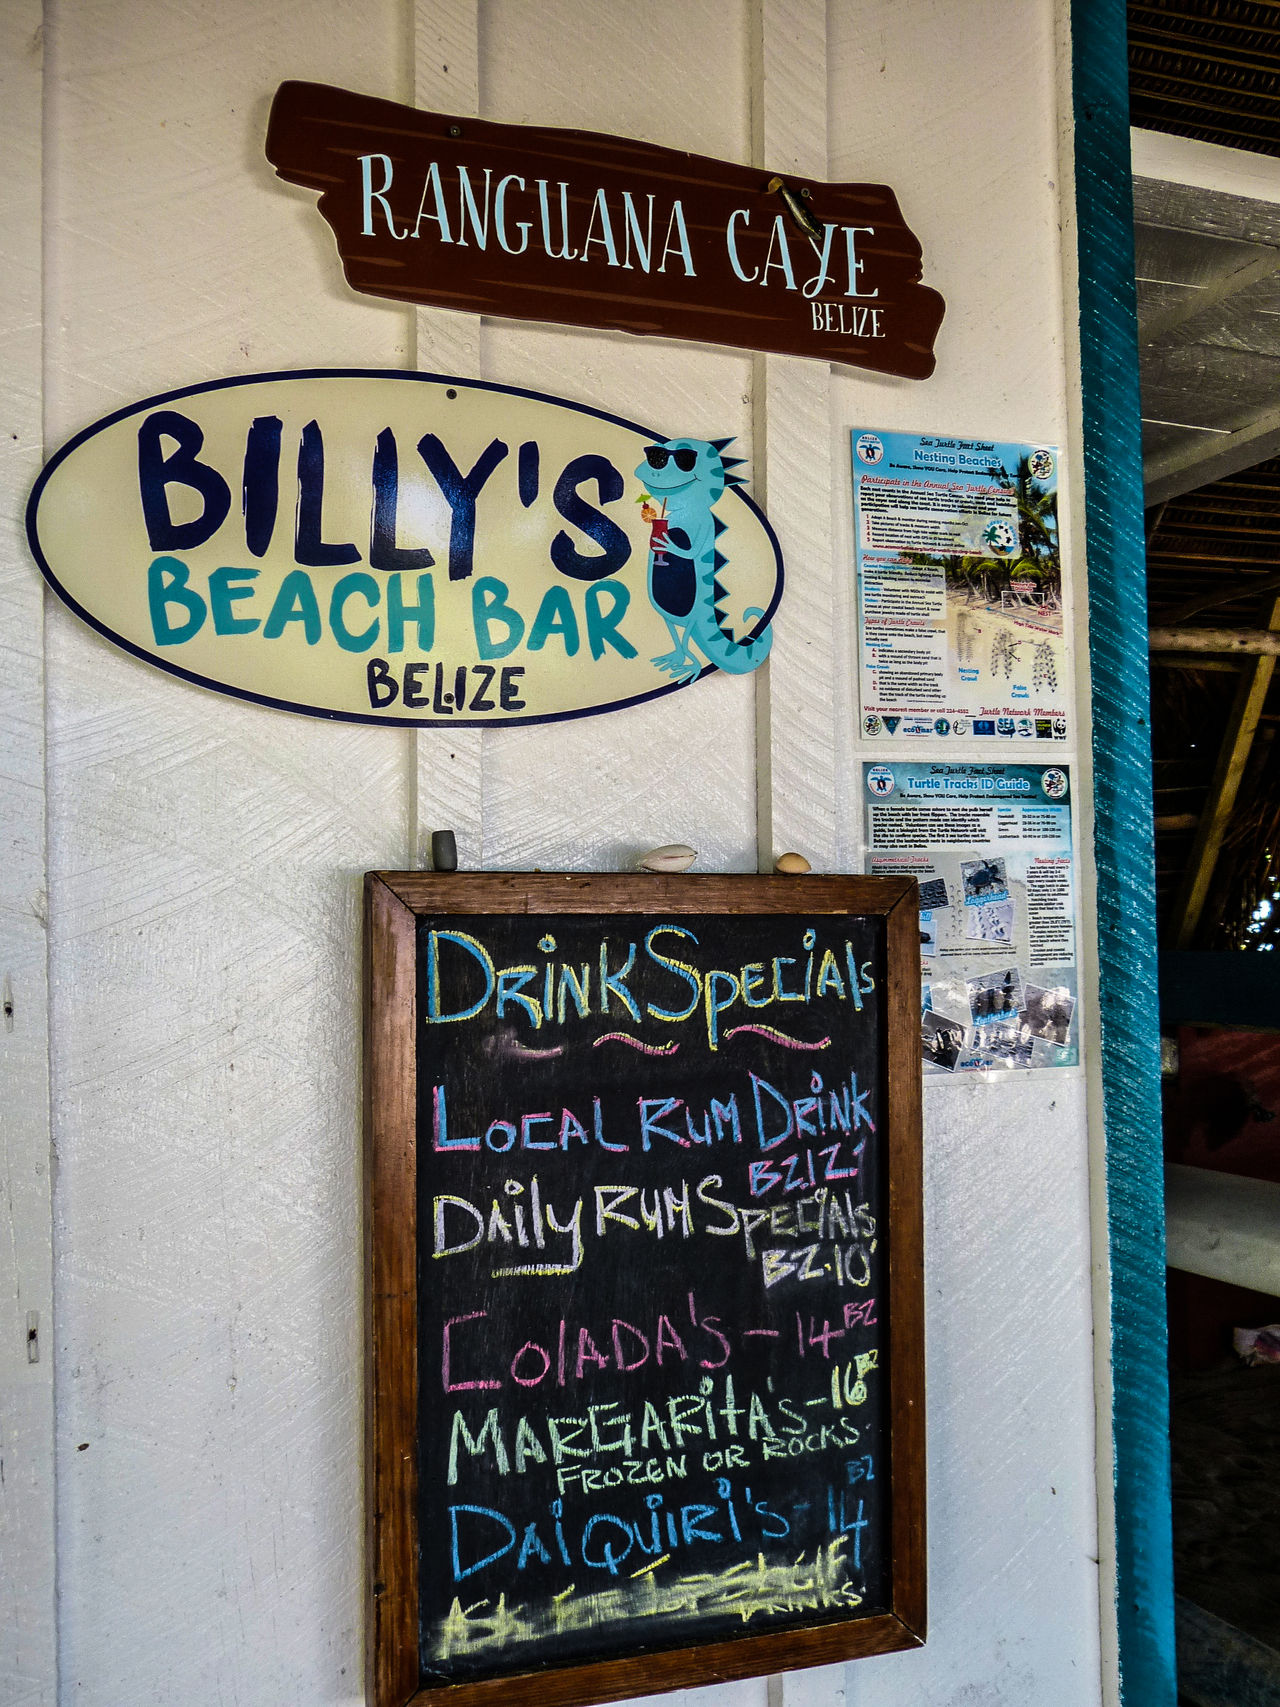 Beach Bar Billy's Beach Bar Blue Close-up Day Directional Sign Information Information Sign Menu Board No People Outdoors Ranguana Caye Sign Signboard Text Western Script Belize  Travel Photography Travel Travel Destinations